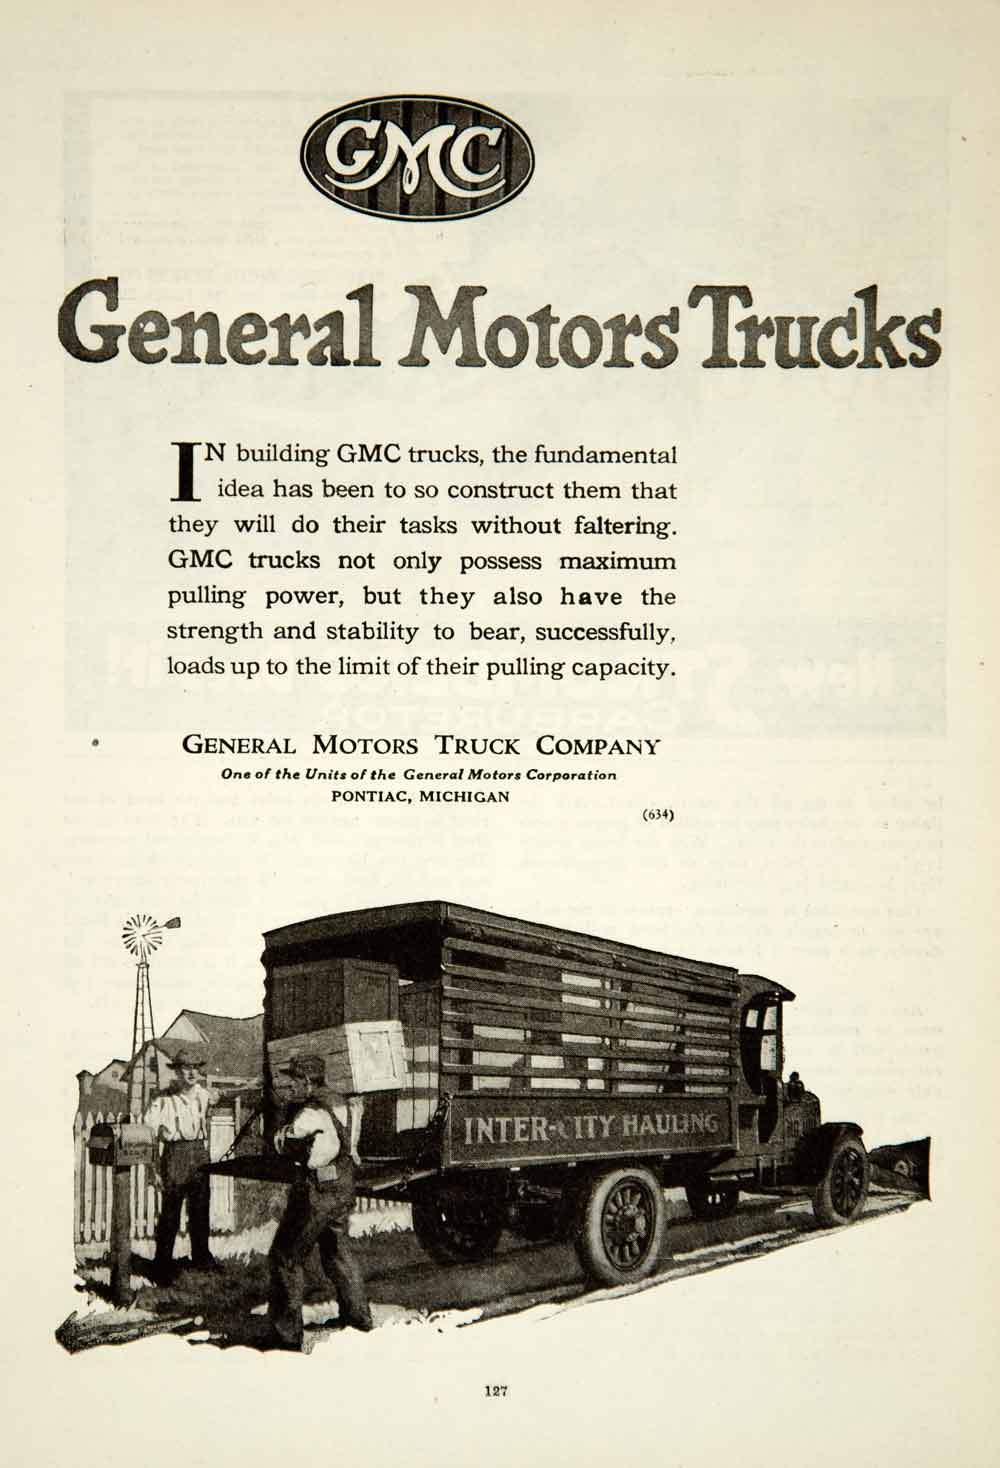 1920 Ad General Motors Corporation Truck Company Automobile GMC Vehicles YRR2